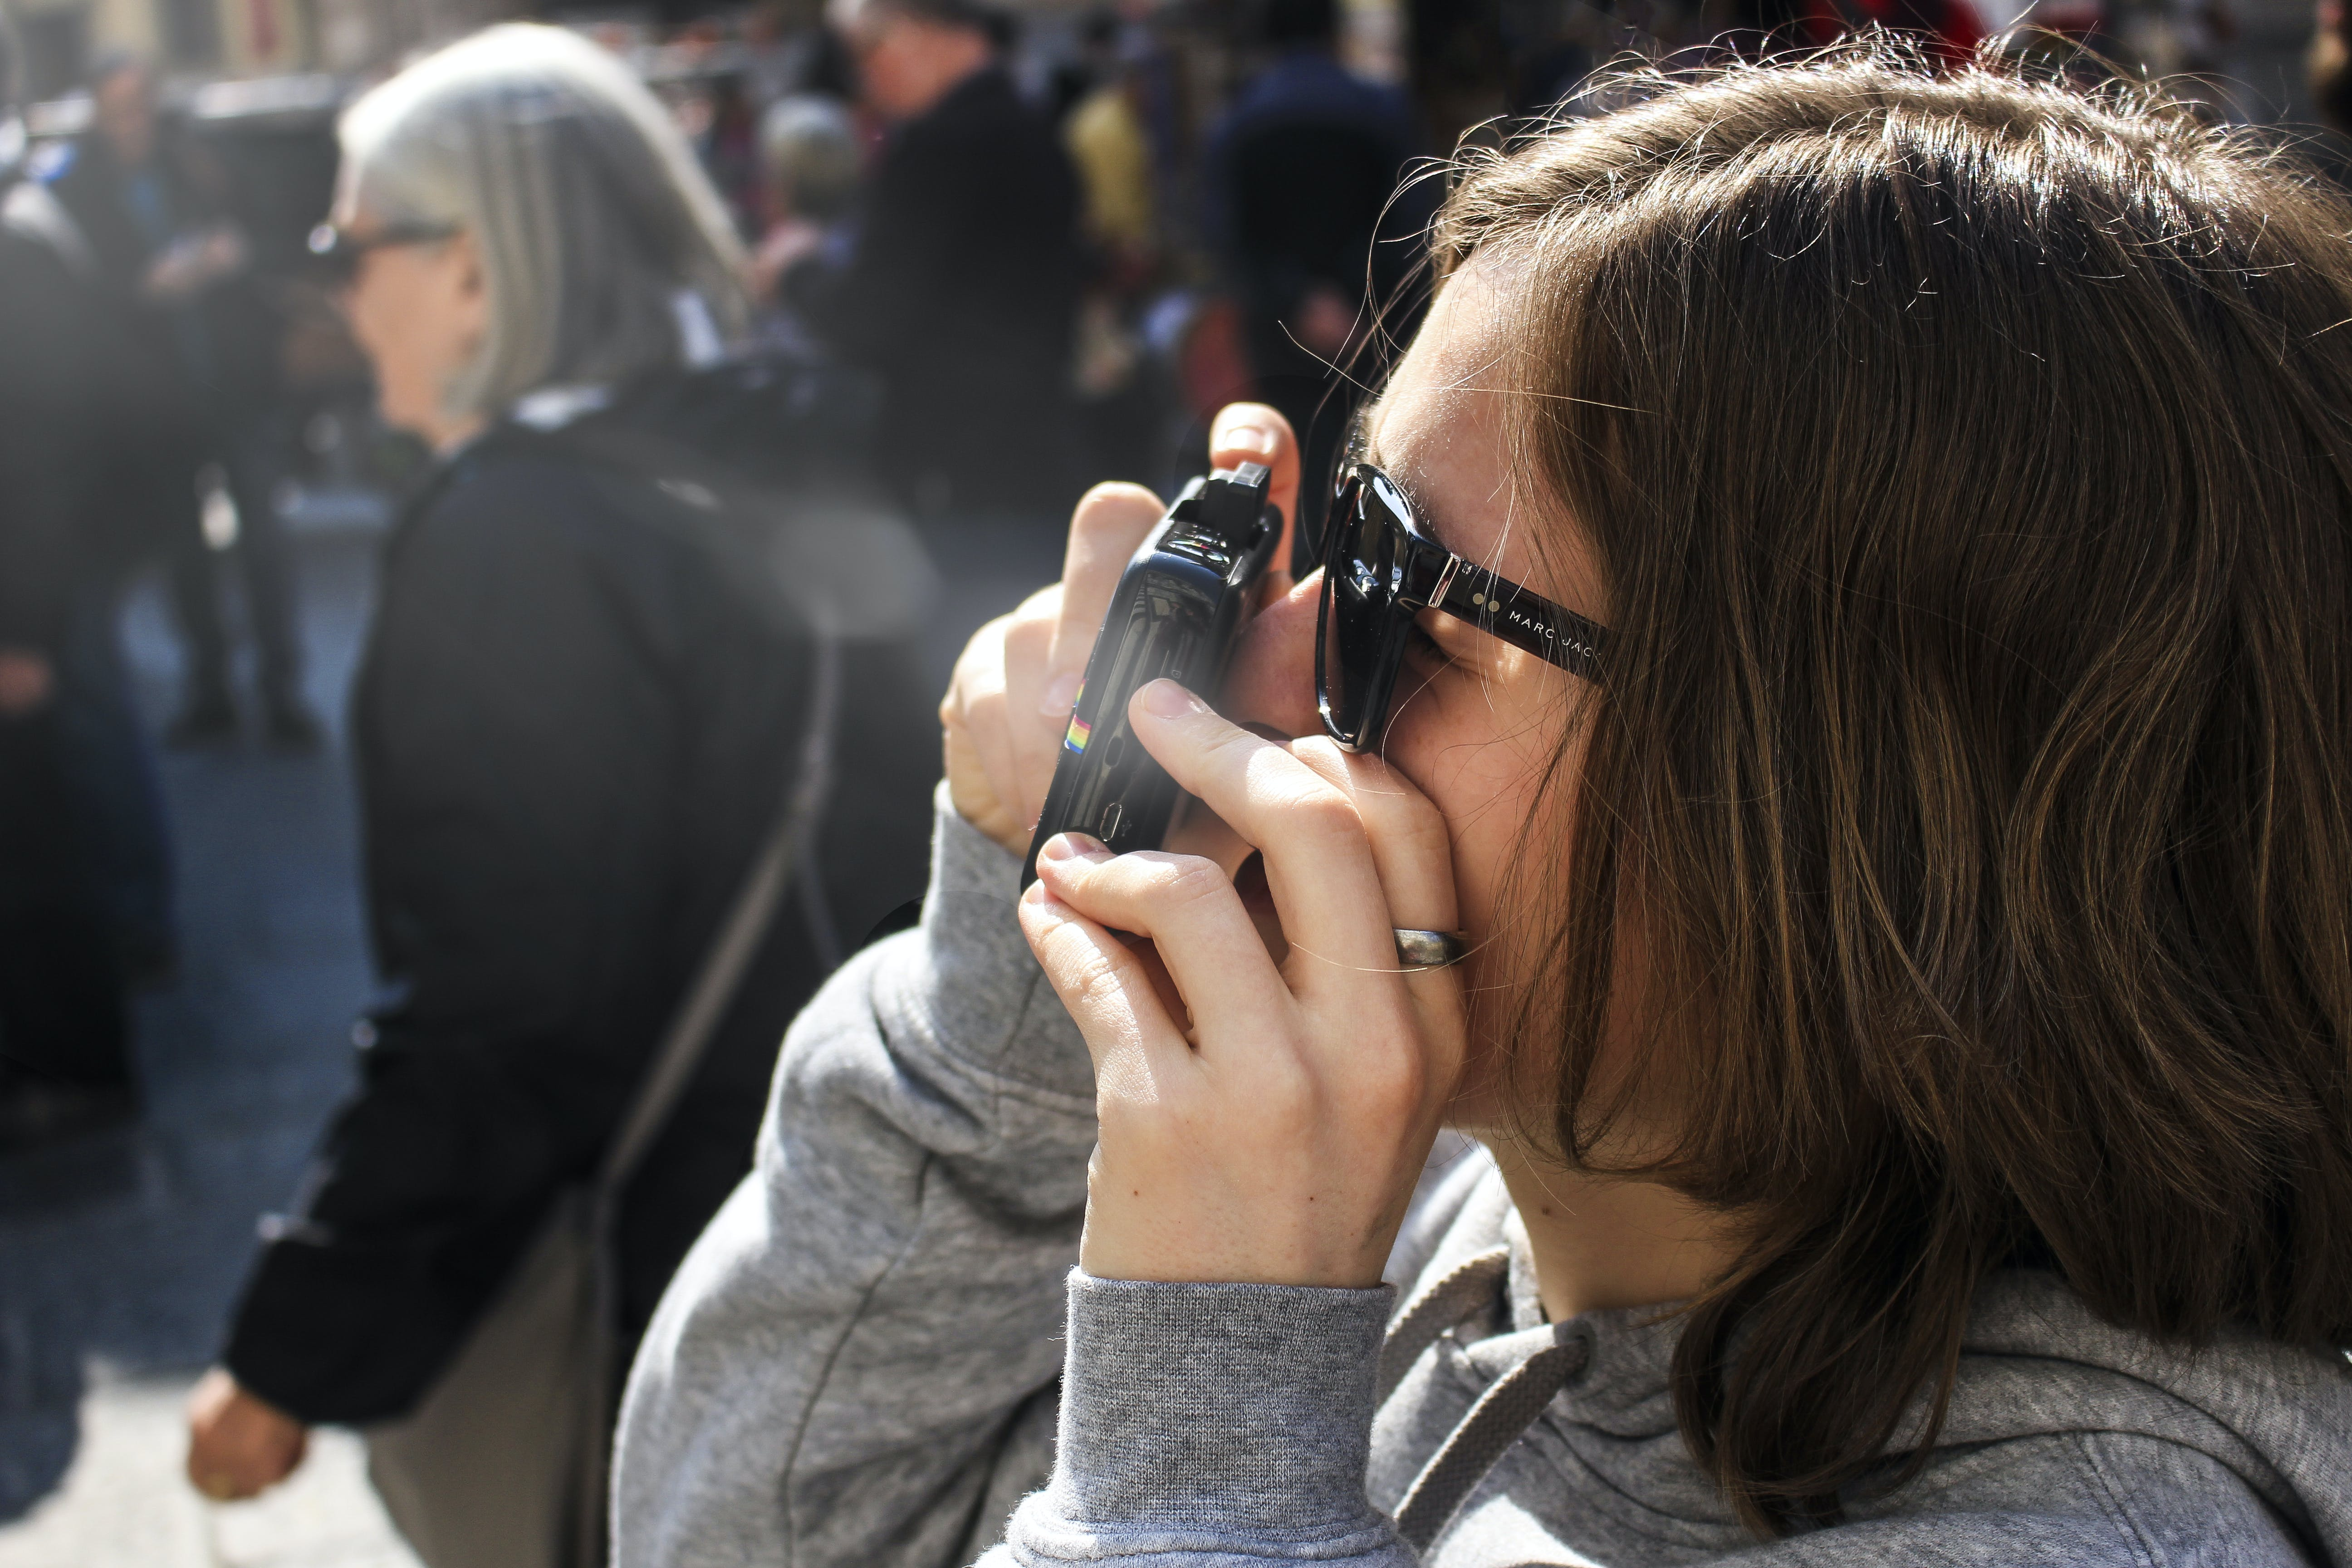 Woman Holding Point-and-shoot Camera With Gray Jacket